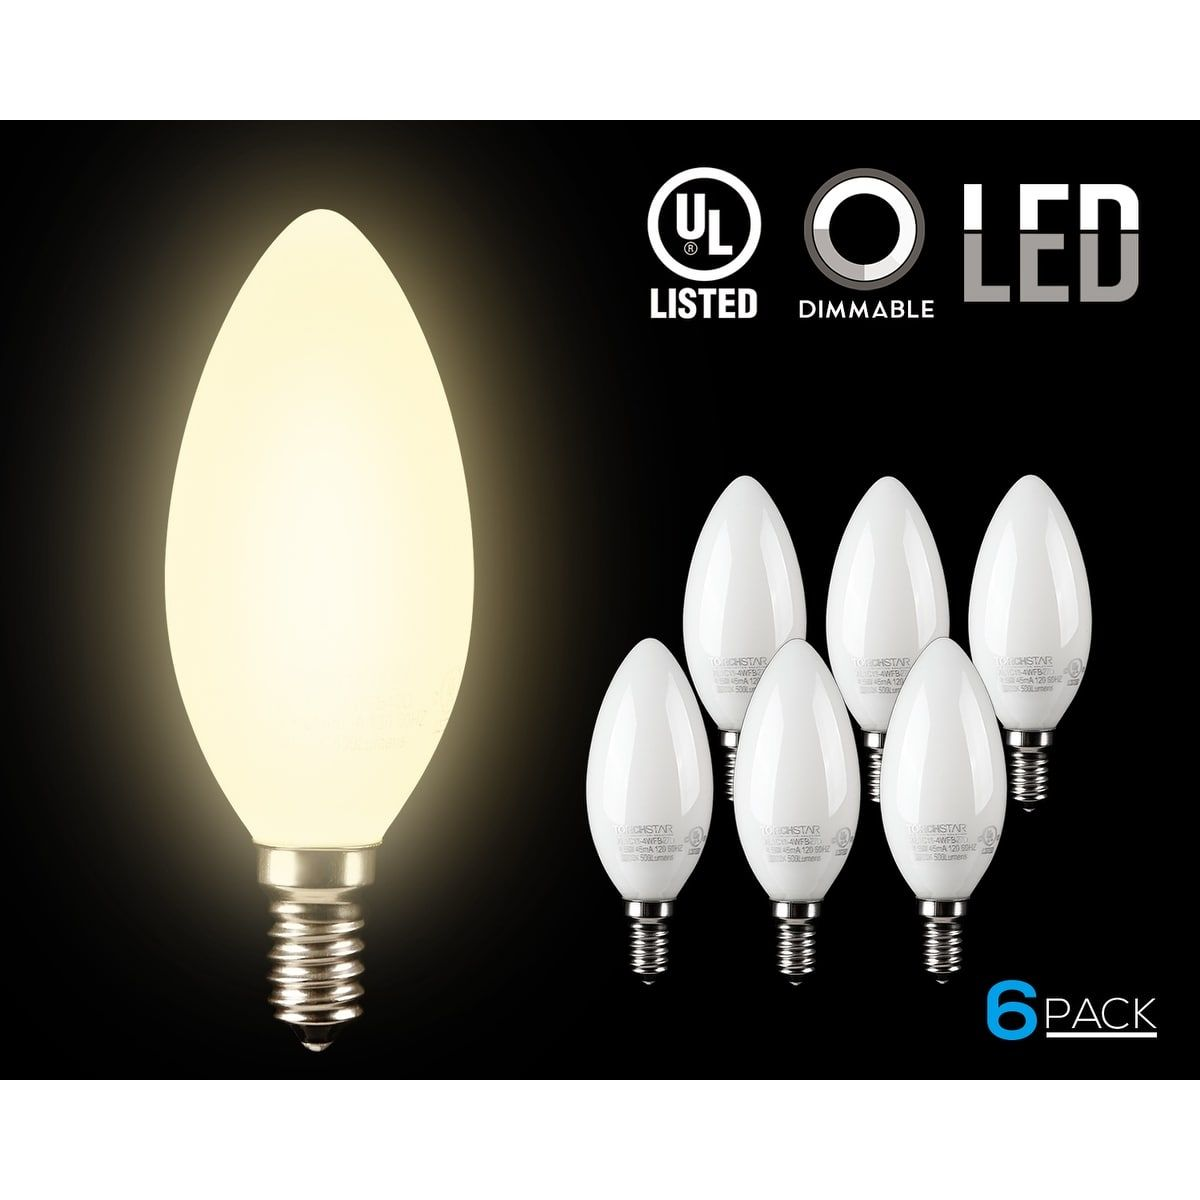 6 Pack 4 5w Dimmable Led C11 Milky Frosted Filament Candle Bulb Soft White E12 Base Bulb Candelabra Bulbs Frosted Glass